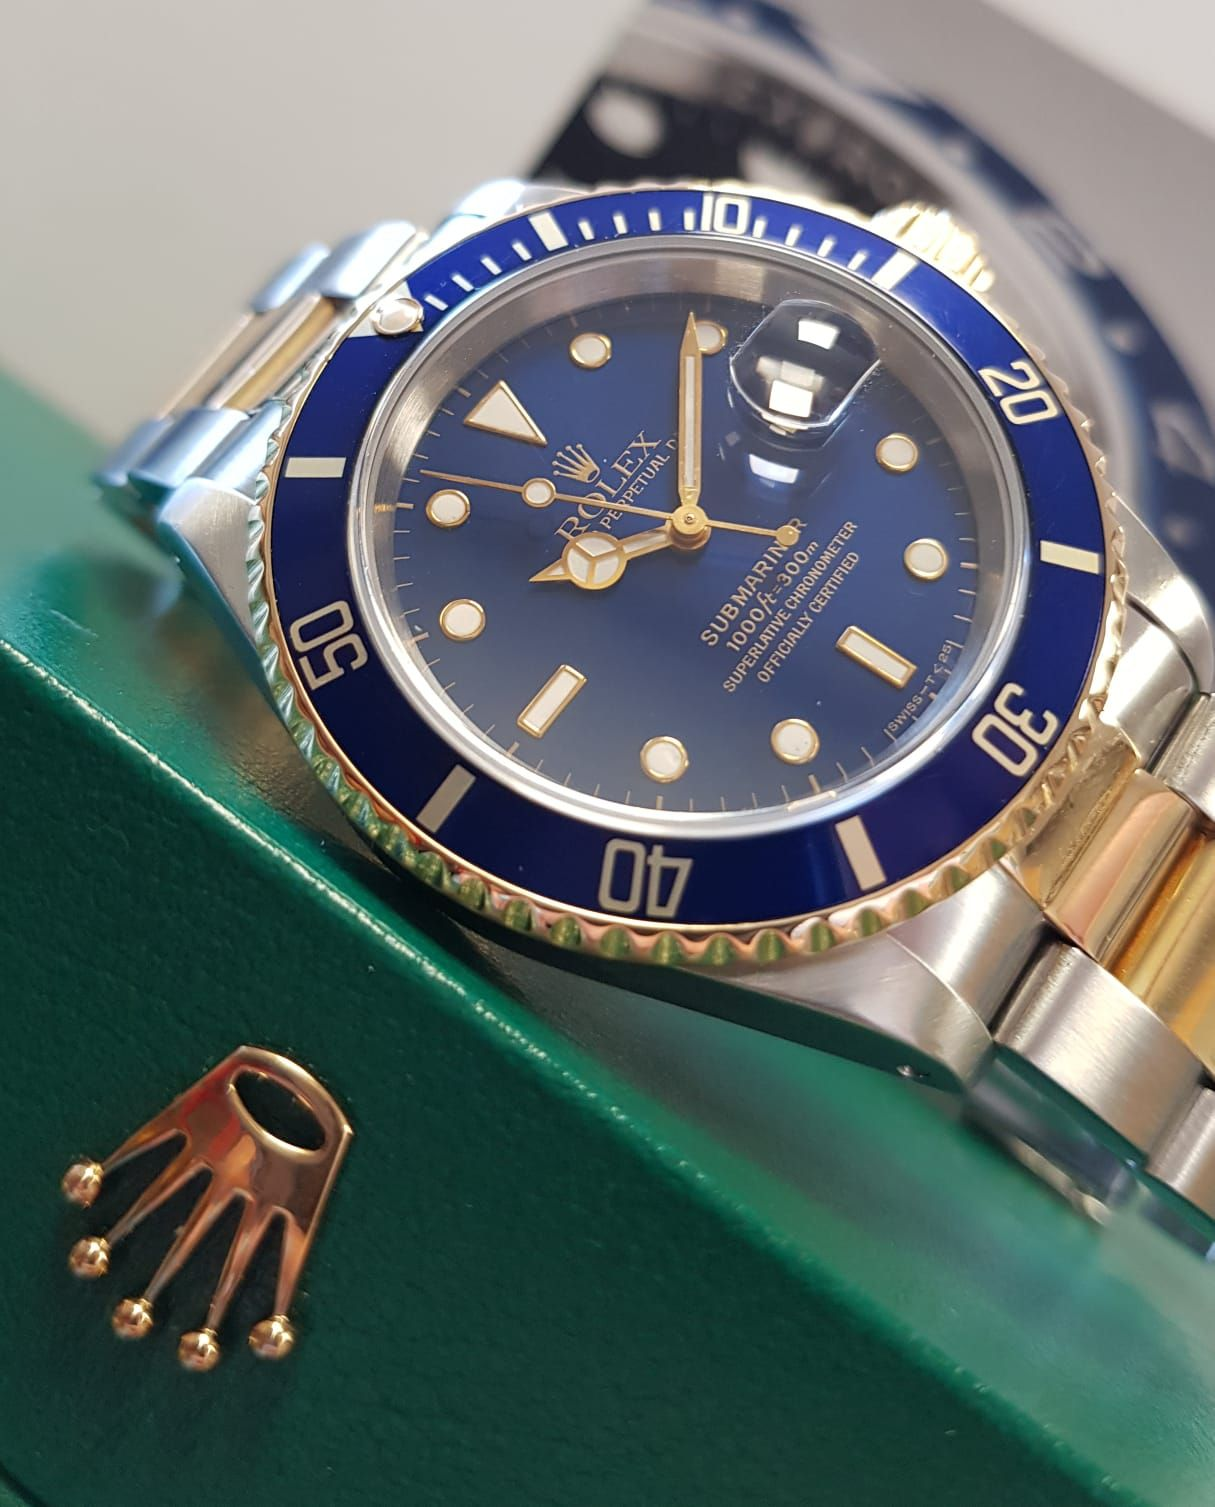 Preowned Rolex Submariner Steel & Gold Blue Dial 16613